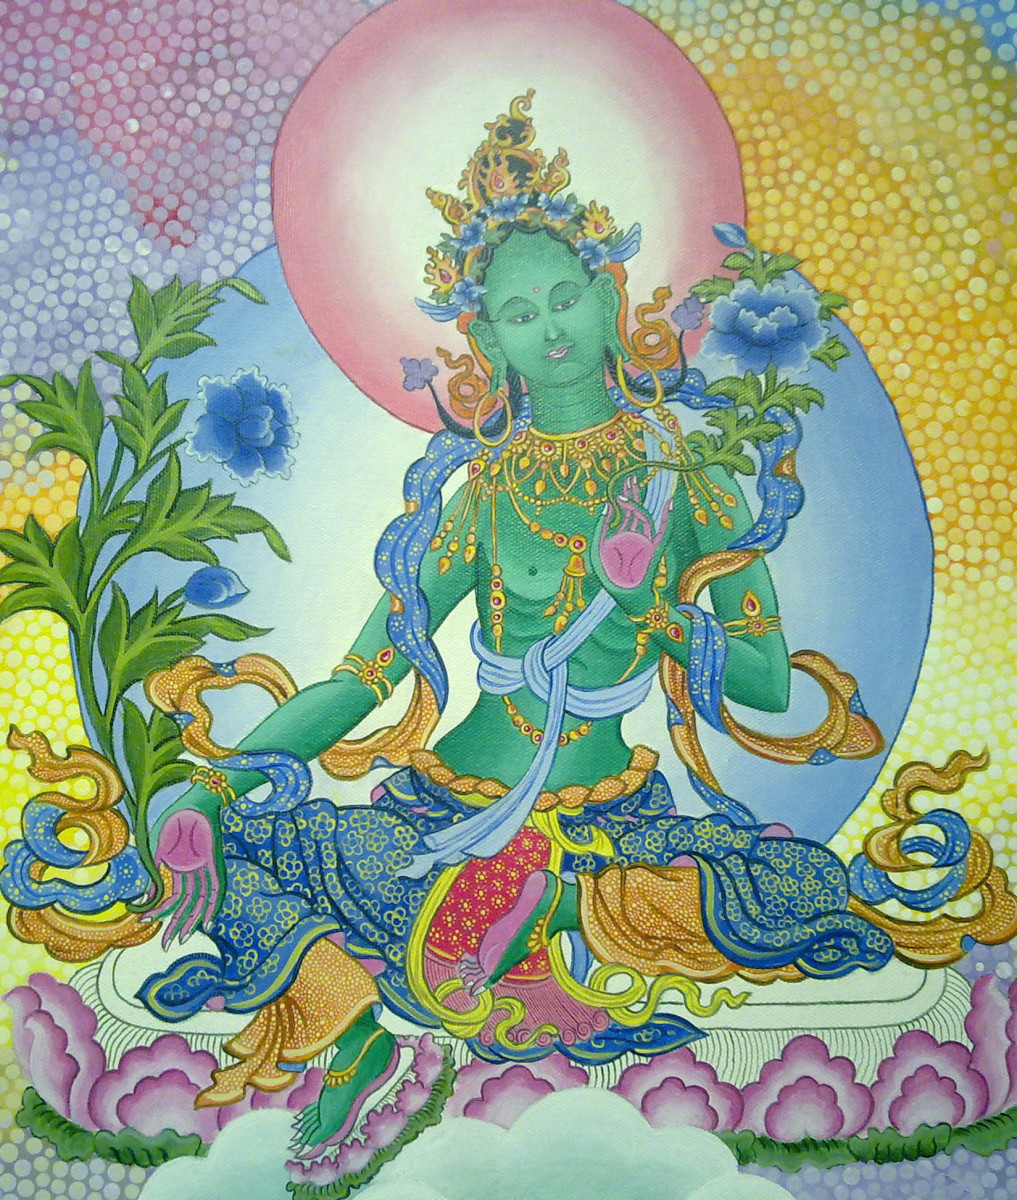 Nepali Princess Bhrikuti was the first person to preach Buddhism in Tibet. Bhrikuti is worshiped as Green Tara